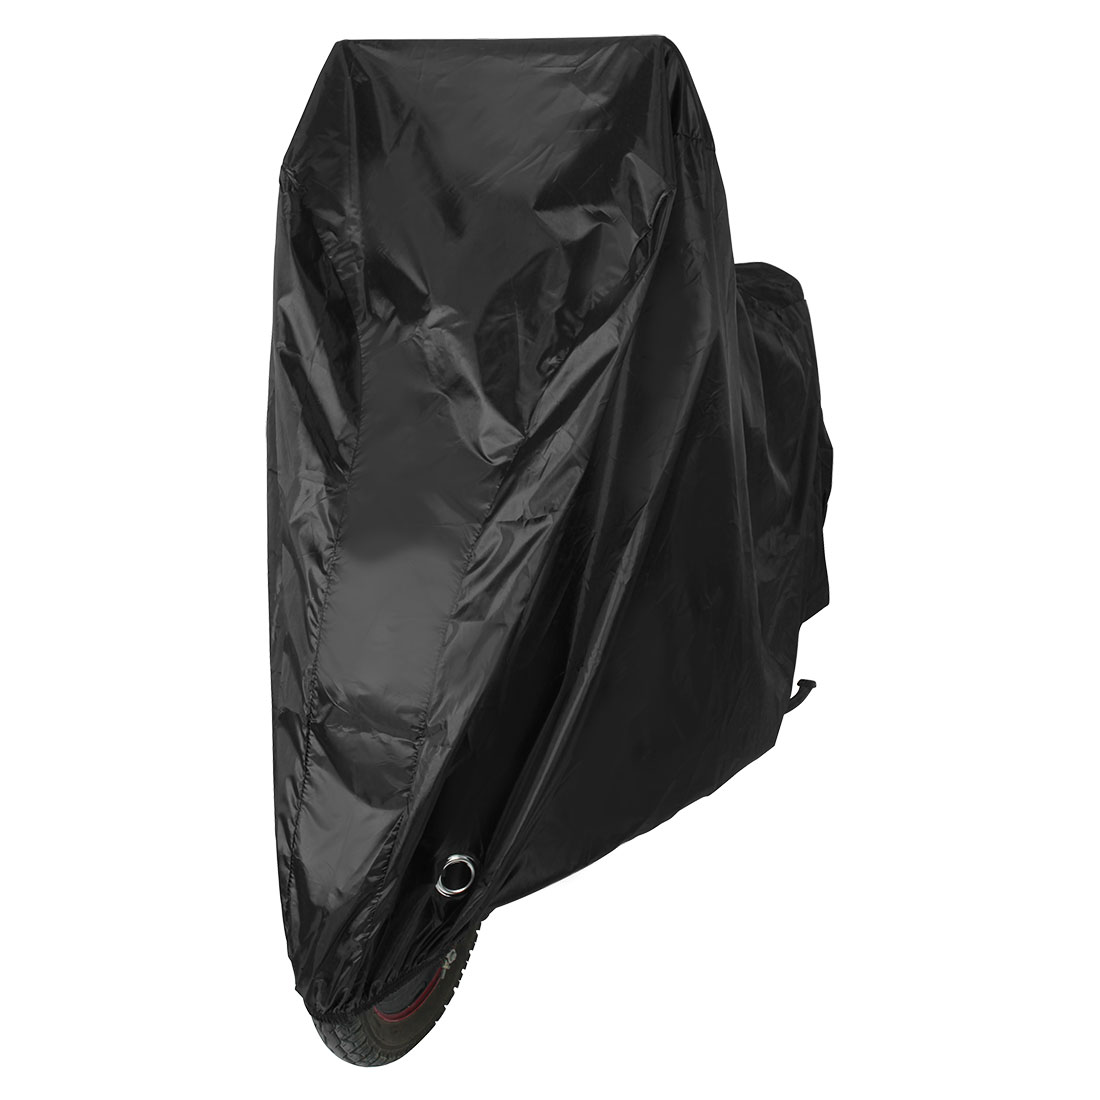 Outdoor Bike Bicycle Rain Dust Cover Water Resistant Garage Scooter Protector XL Black